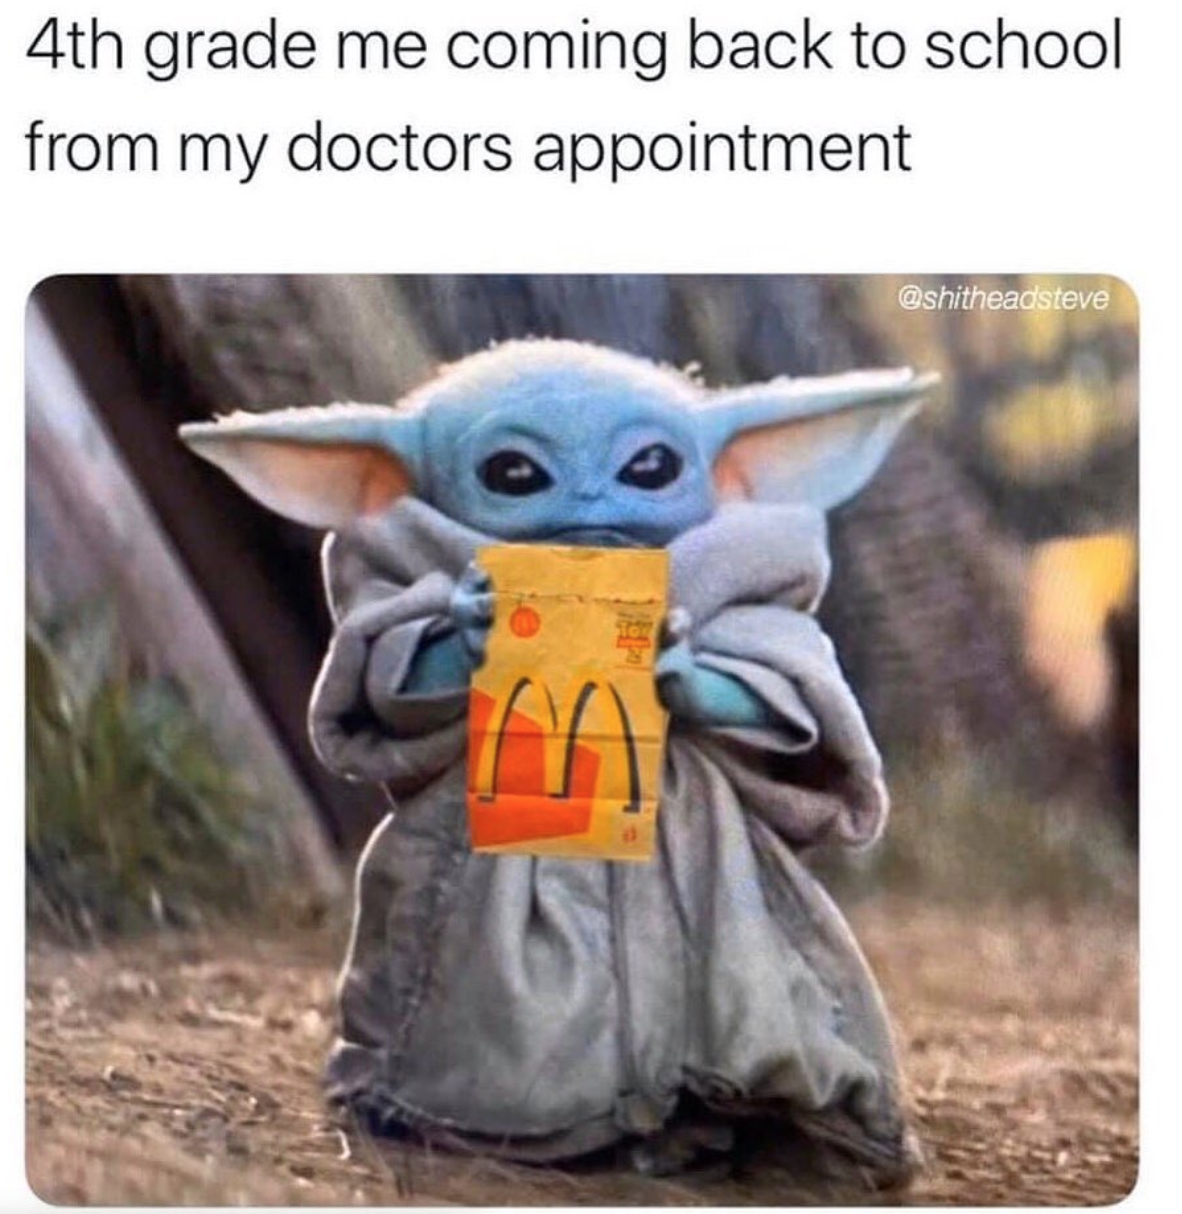 back to school after appointment baby yoda meme, baby yoda meme, baby yoda memes, funny baby yoda meme, funny baby yoda memes, cute baby yoda meme, cute baby yoda memes, best baby yoda meme, best baby yoda memes, baby yoda meme funny, baby yoda meme cute, baby yoda memes funny, baby yoda memes cute, funny baby yoda picture, funny baby yoda pictures, funny baby yoda image, funny baby yoda images